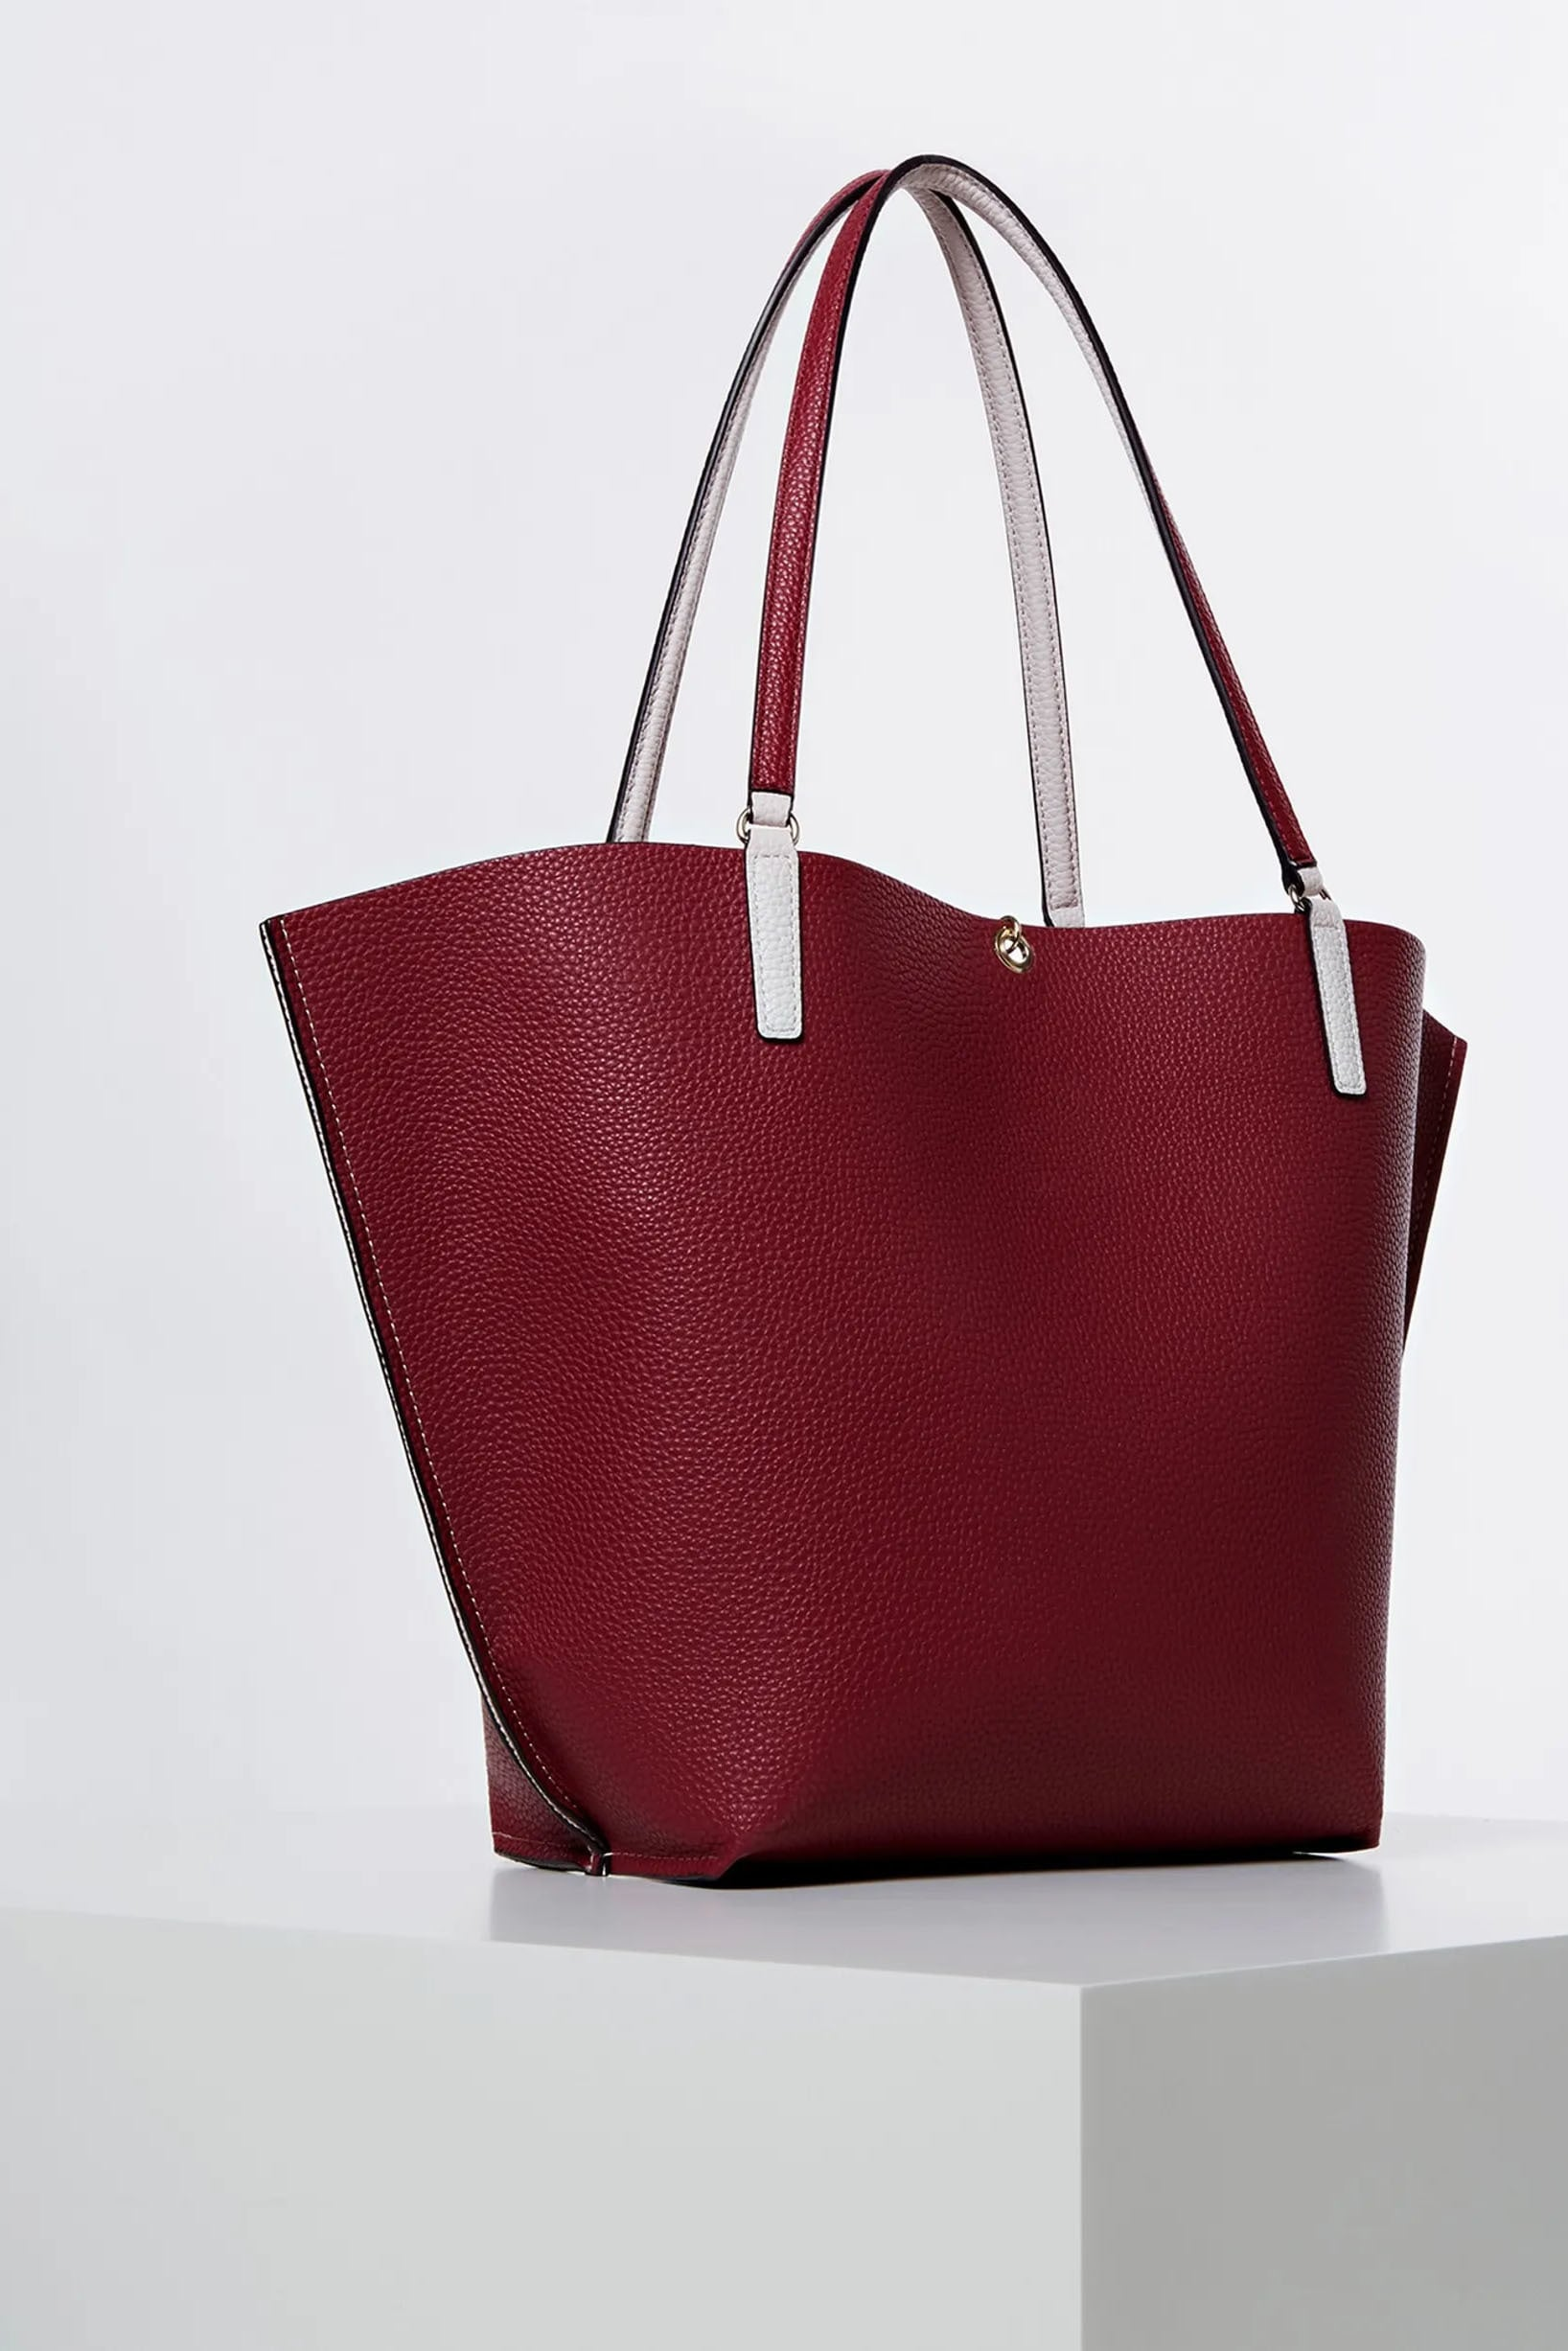 Guess alby handtas rood Xxxxx Guess alby handtas rood